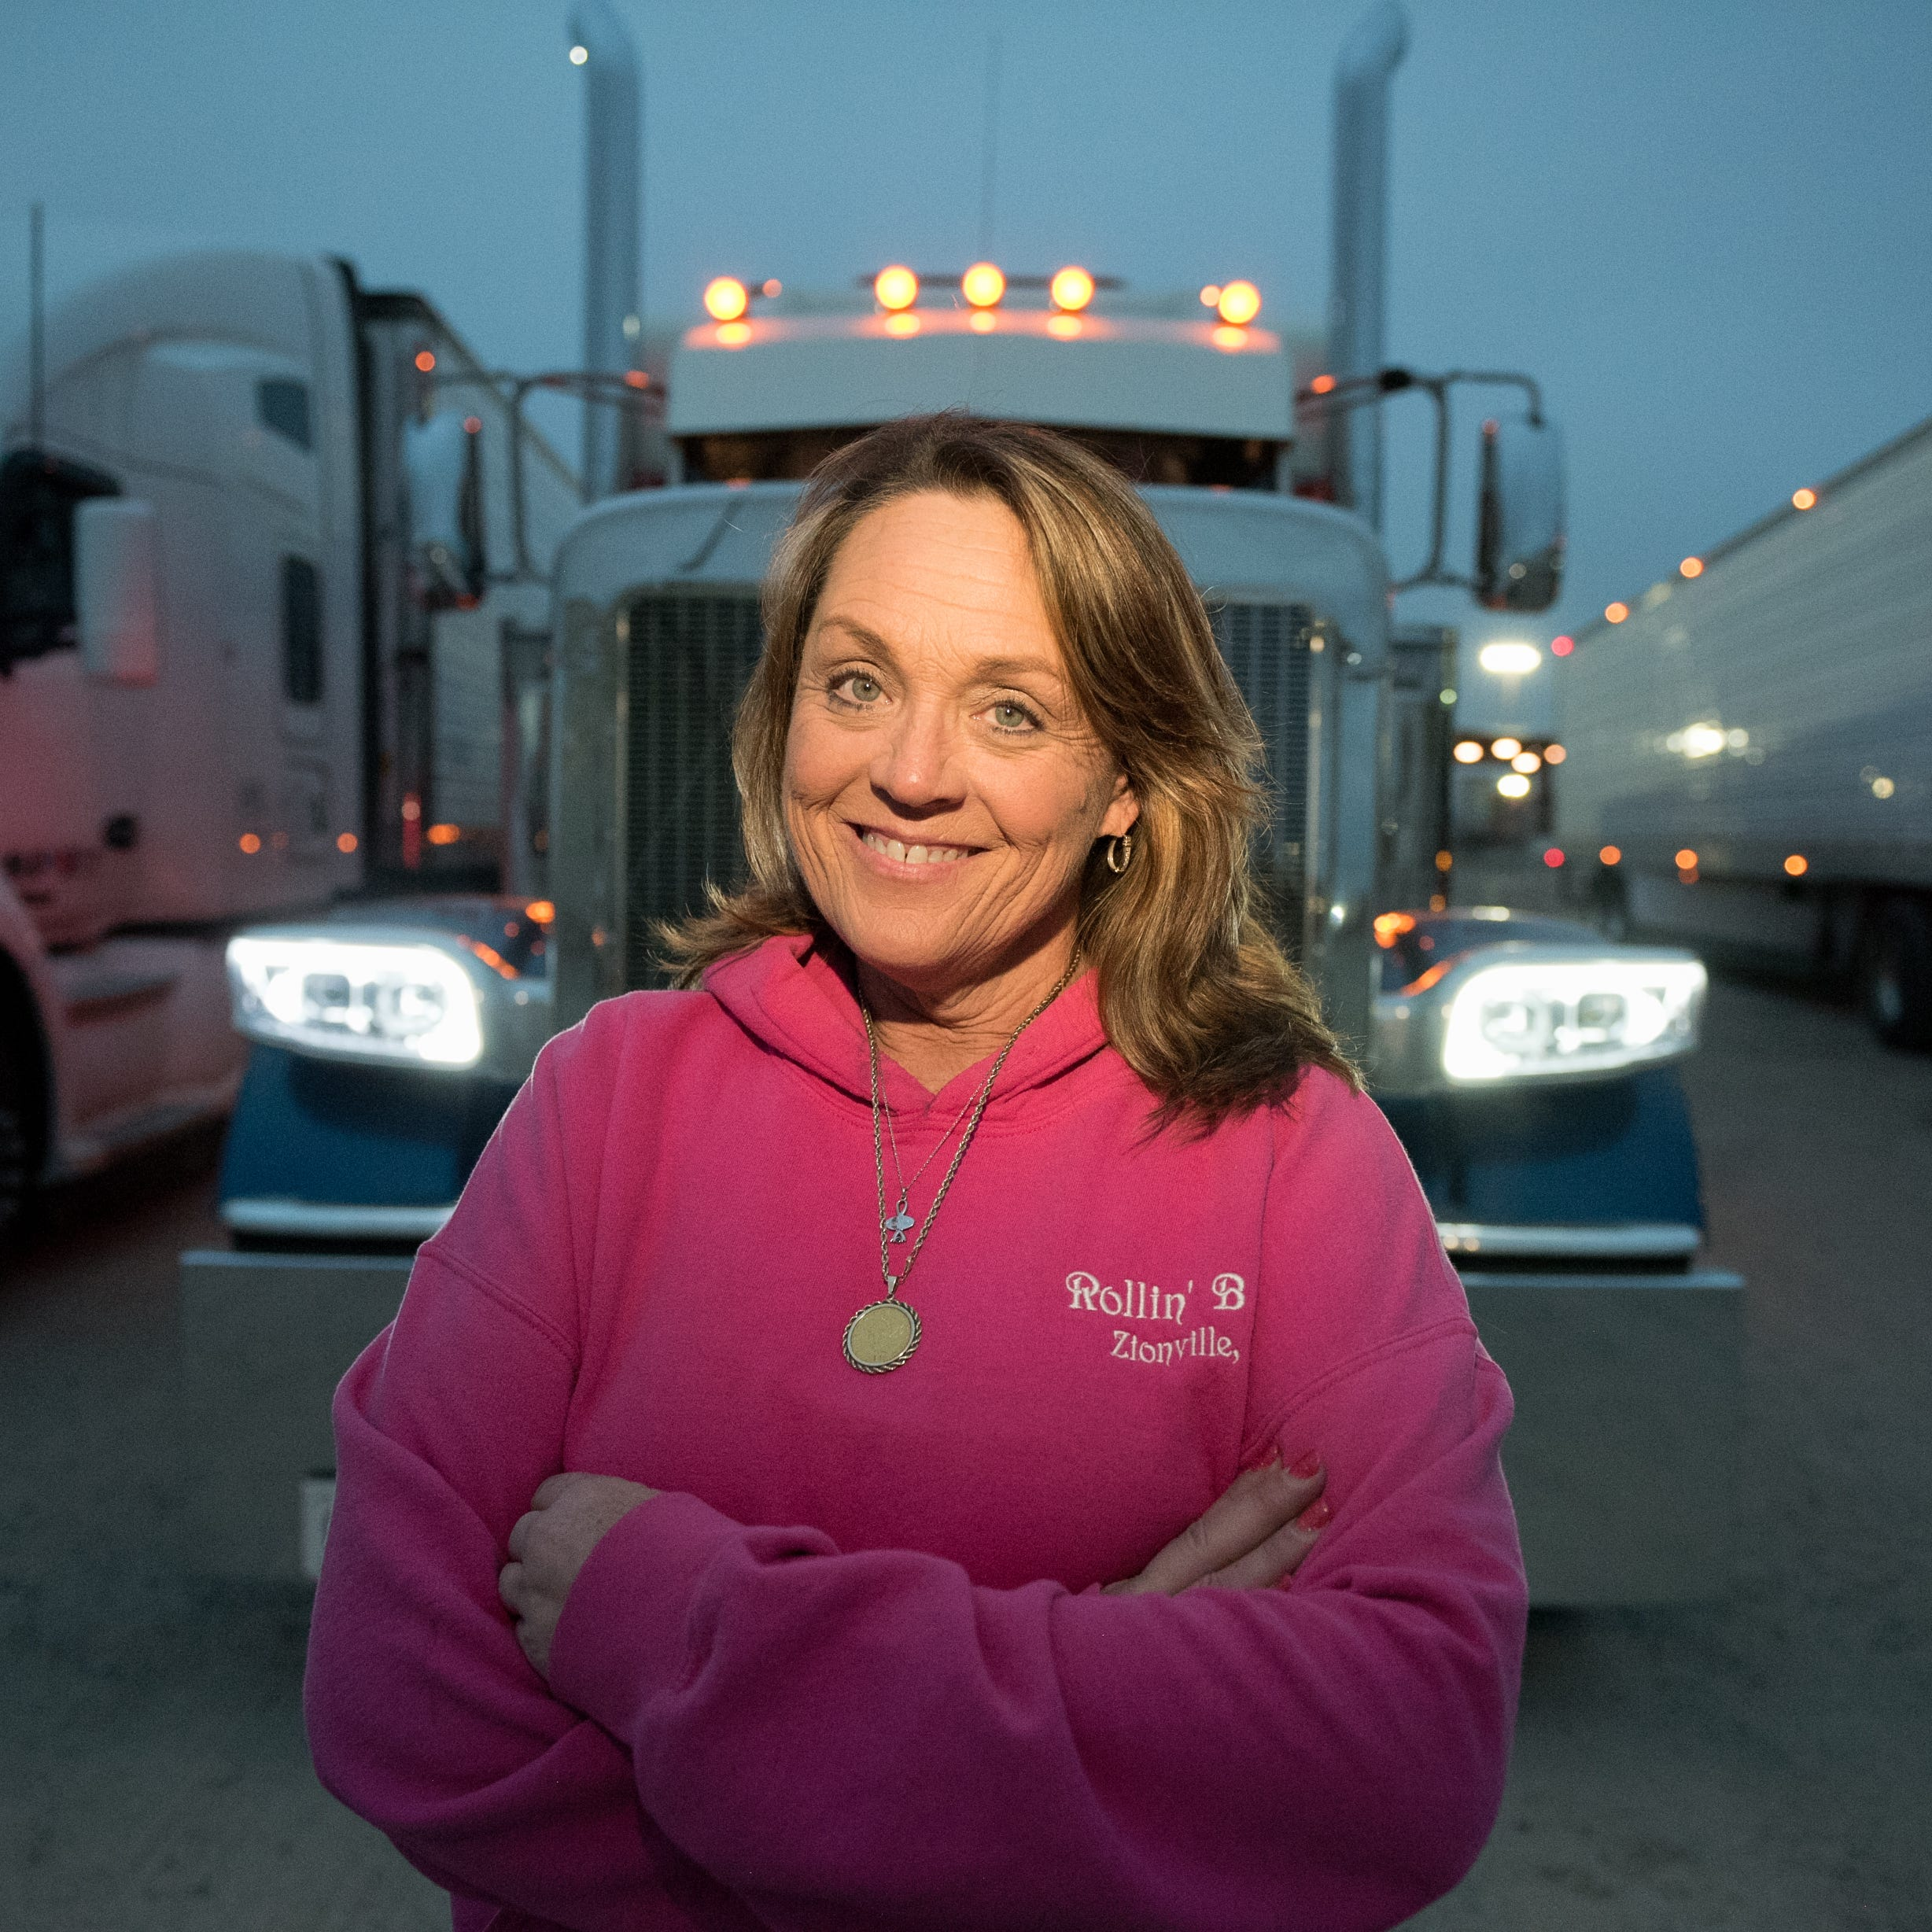 Women are increasingly joining the deadly world of truck driving, confronting sexism and long days